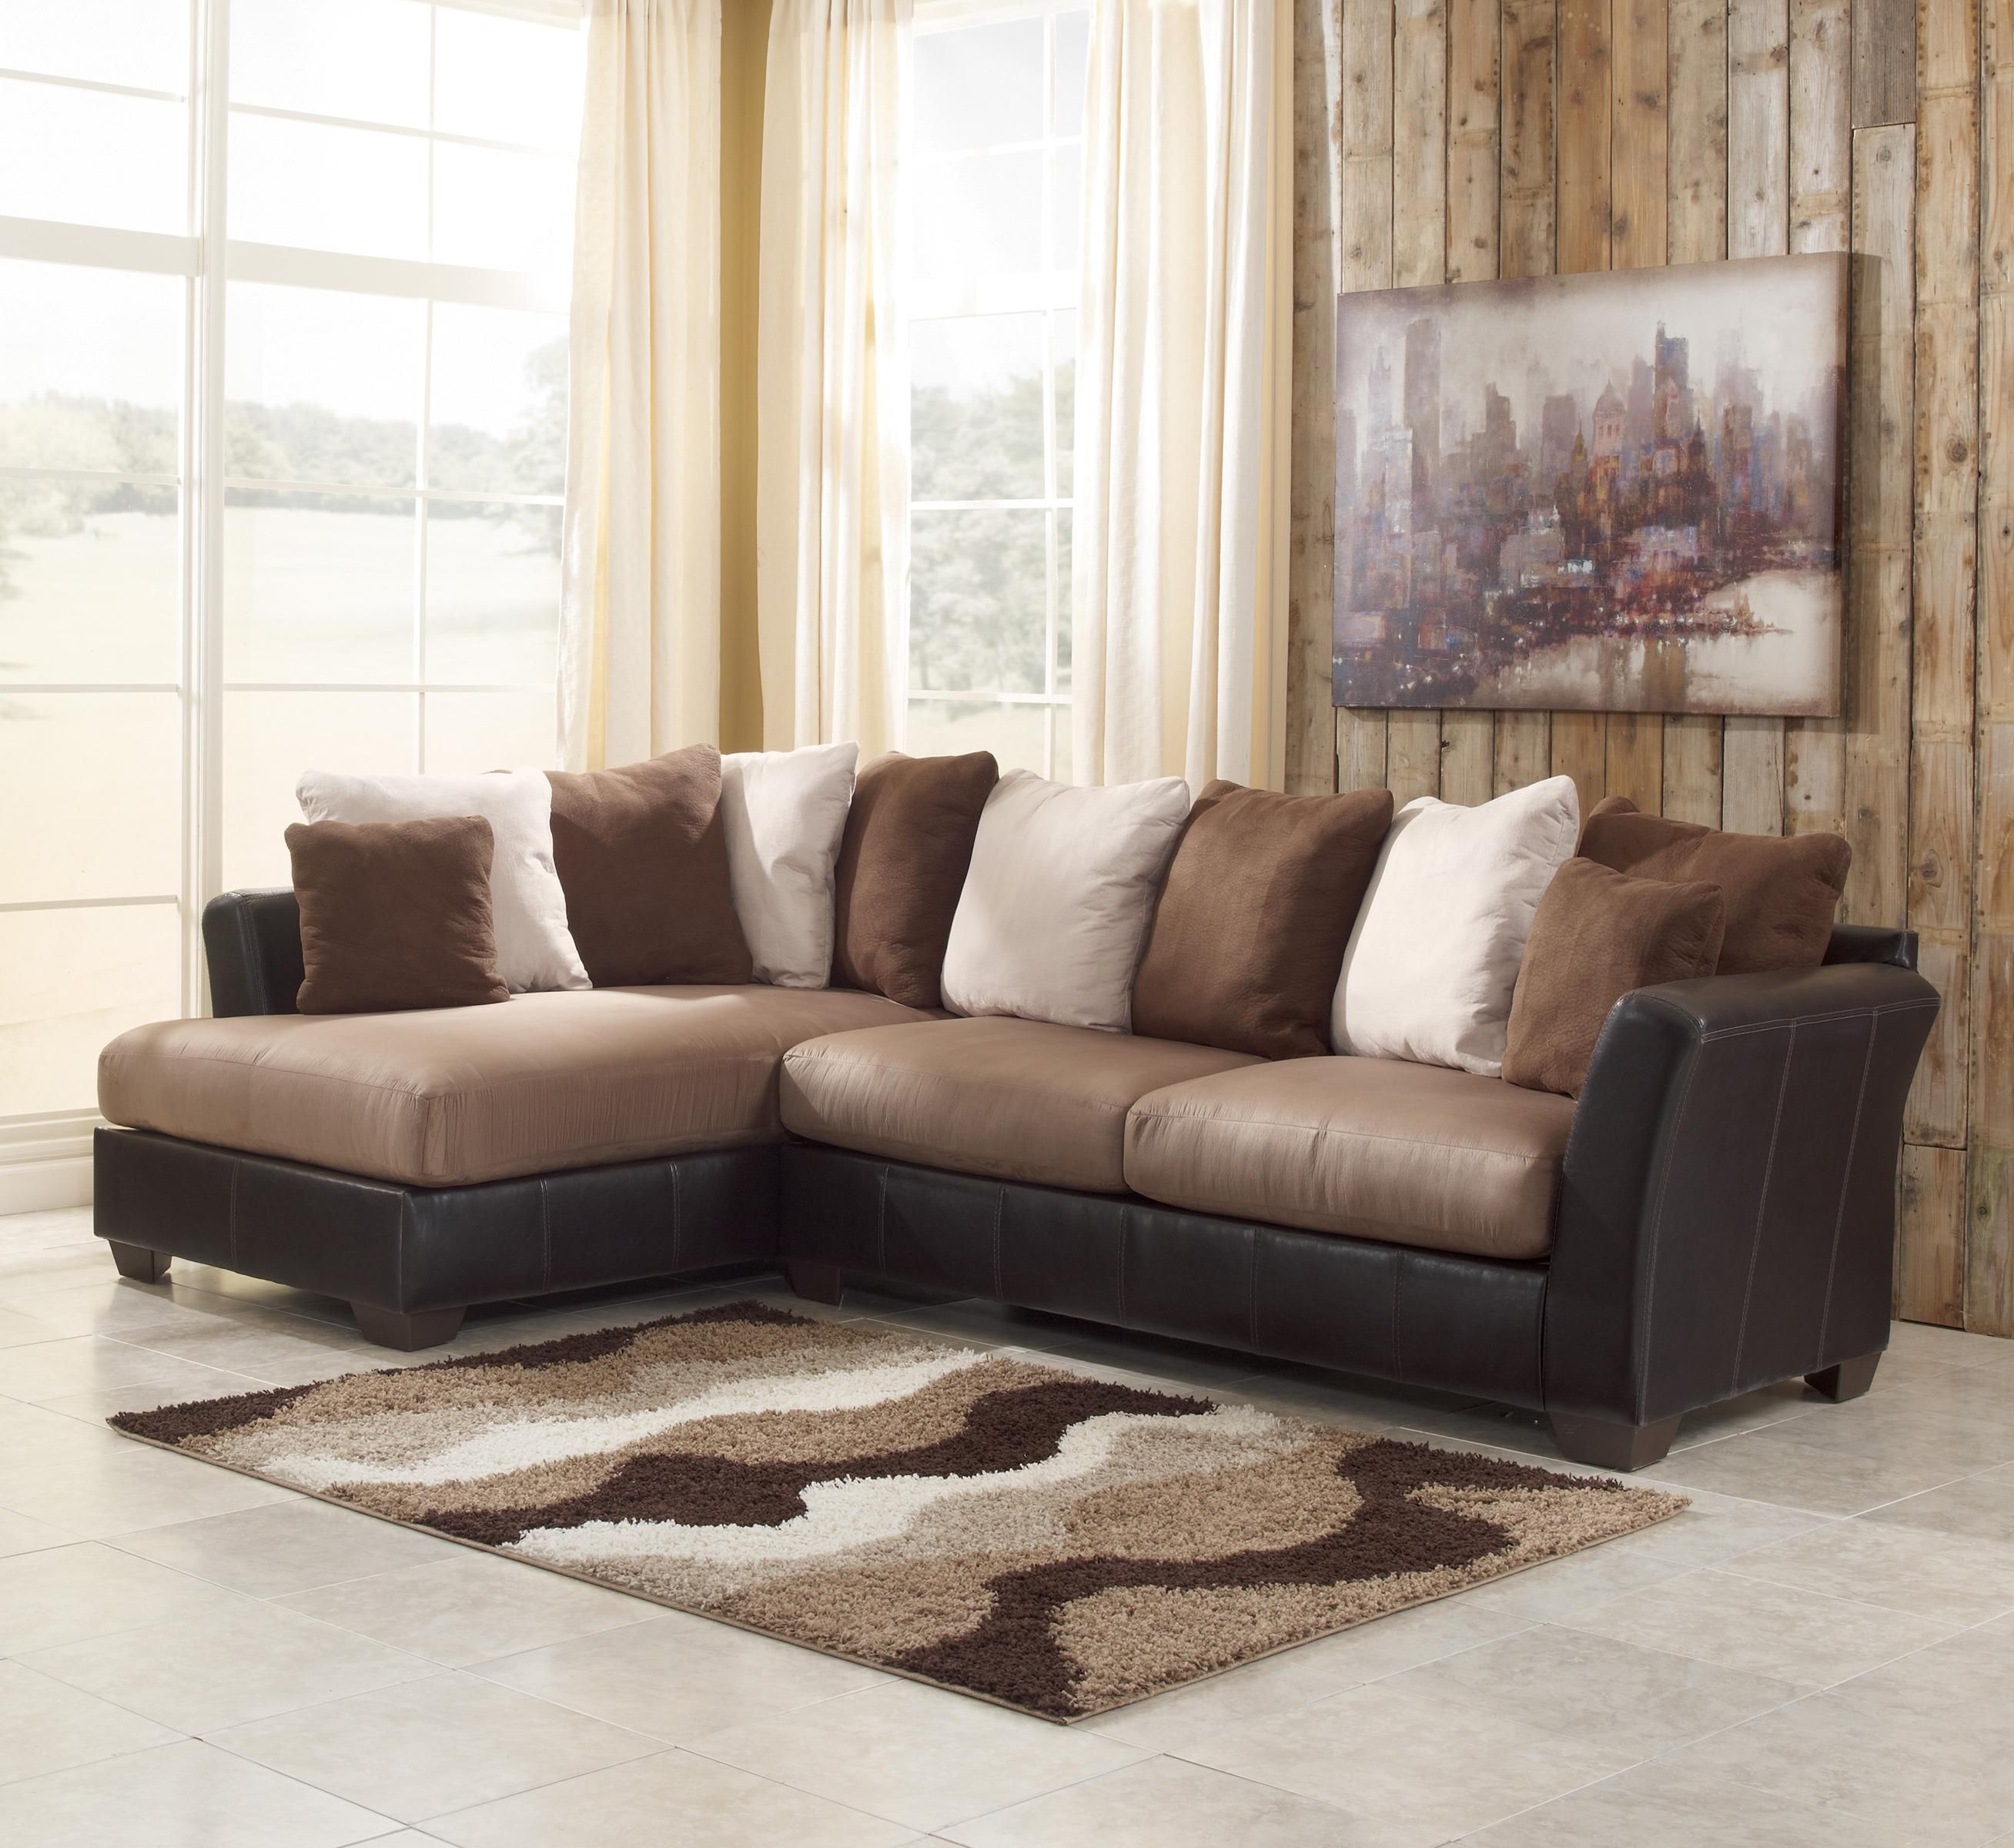 Ashley Furniture Calgary: Masoli - Mocha 2-Piece Sectional With Chaise By Benchcraft